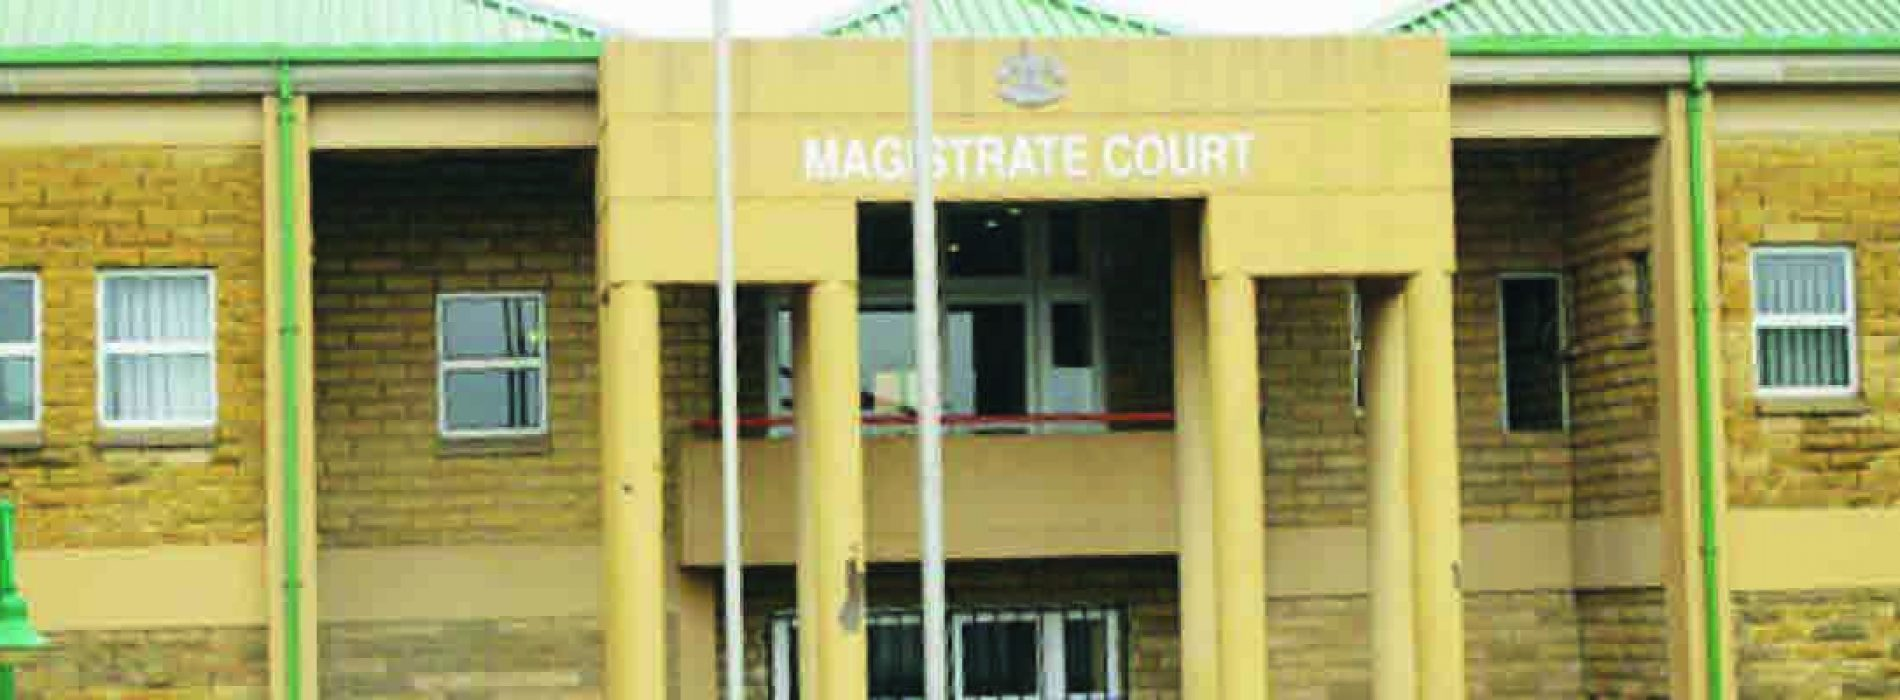 Soldier in trouble over abduction plot